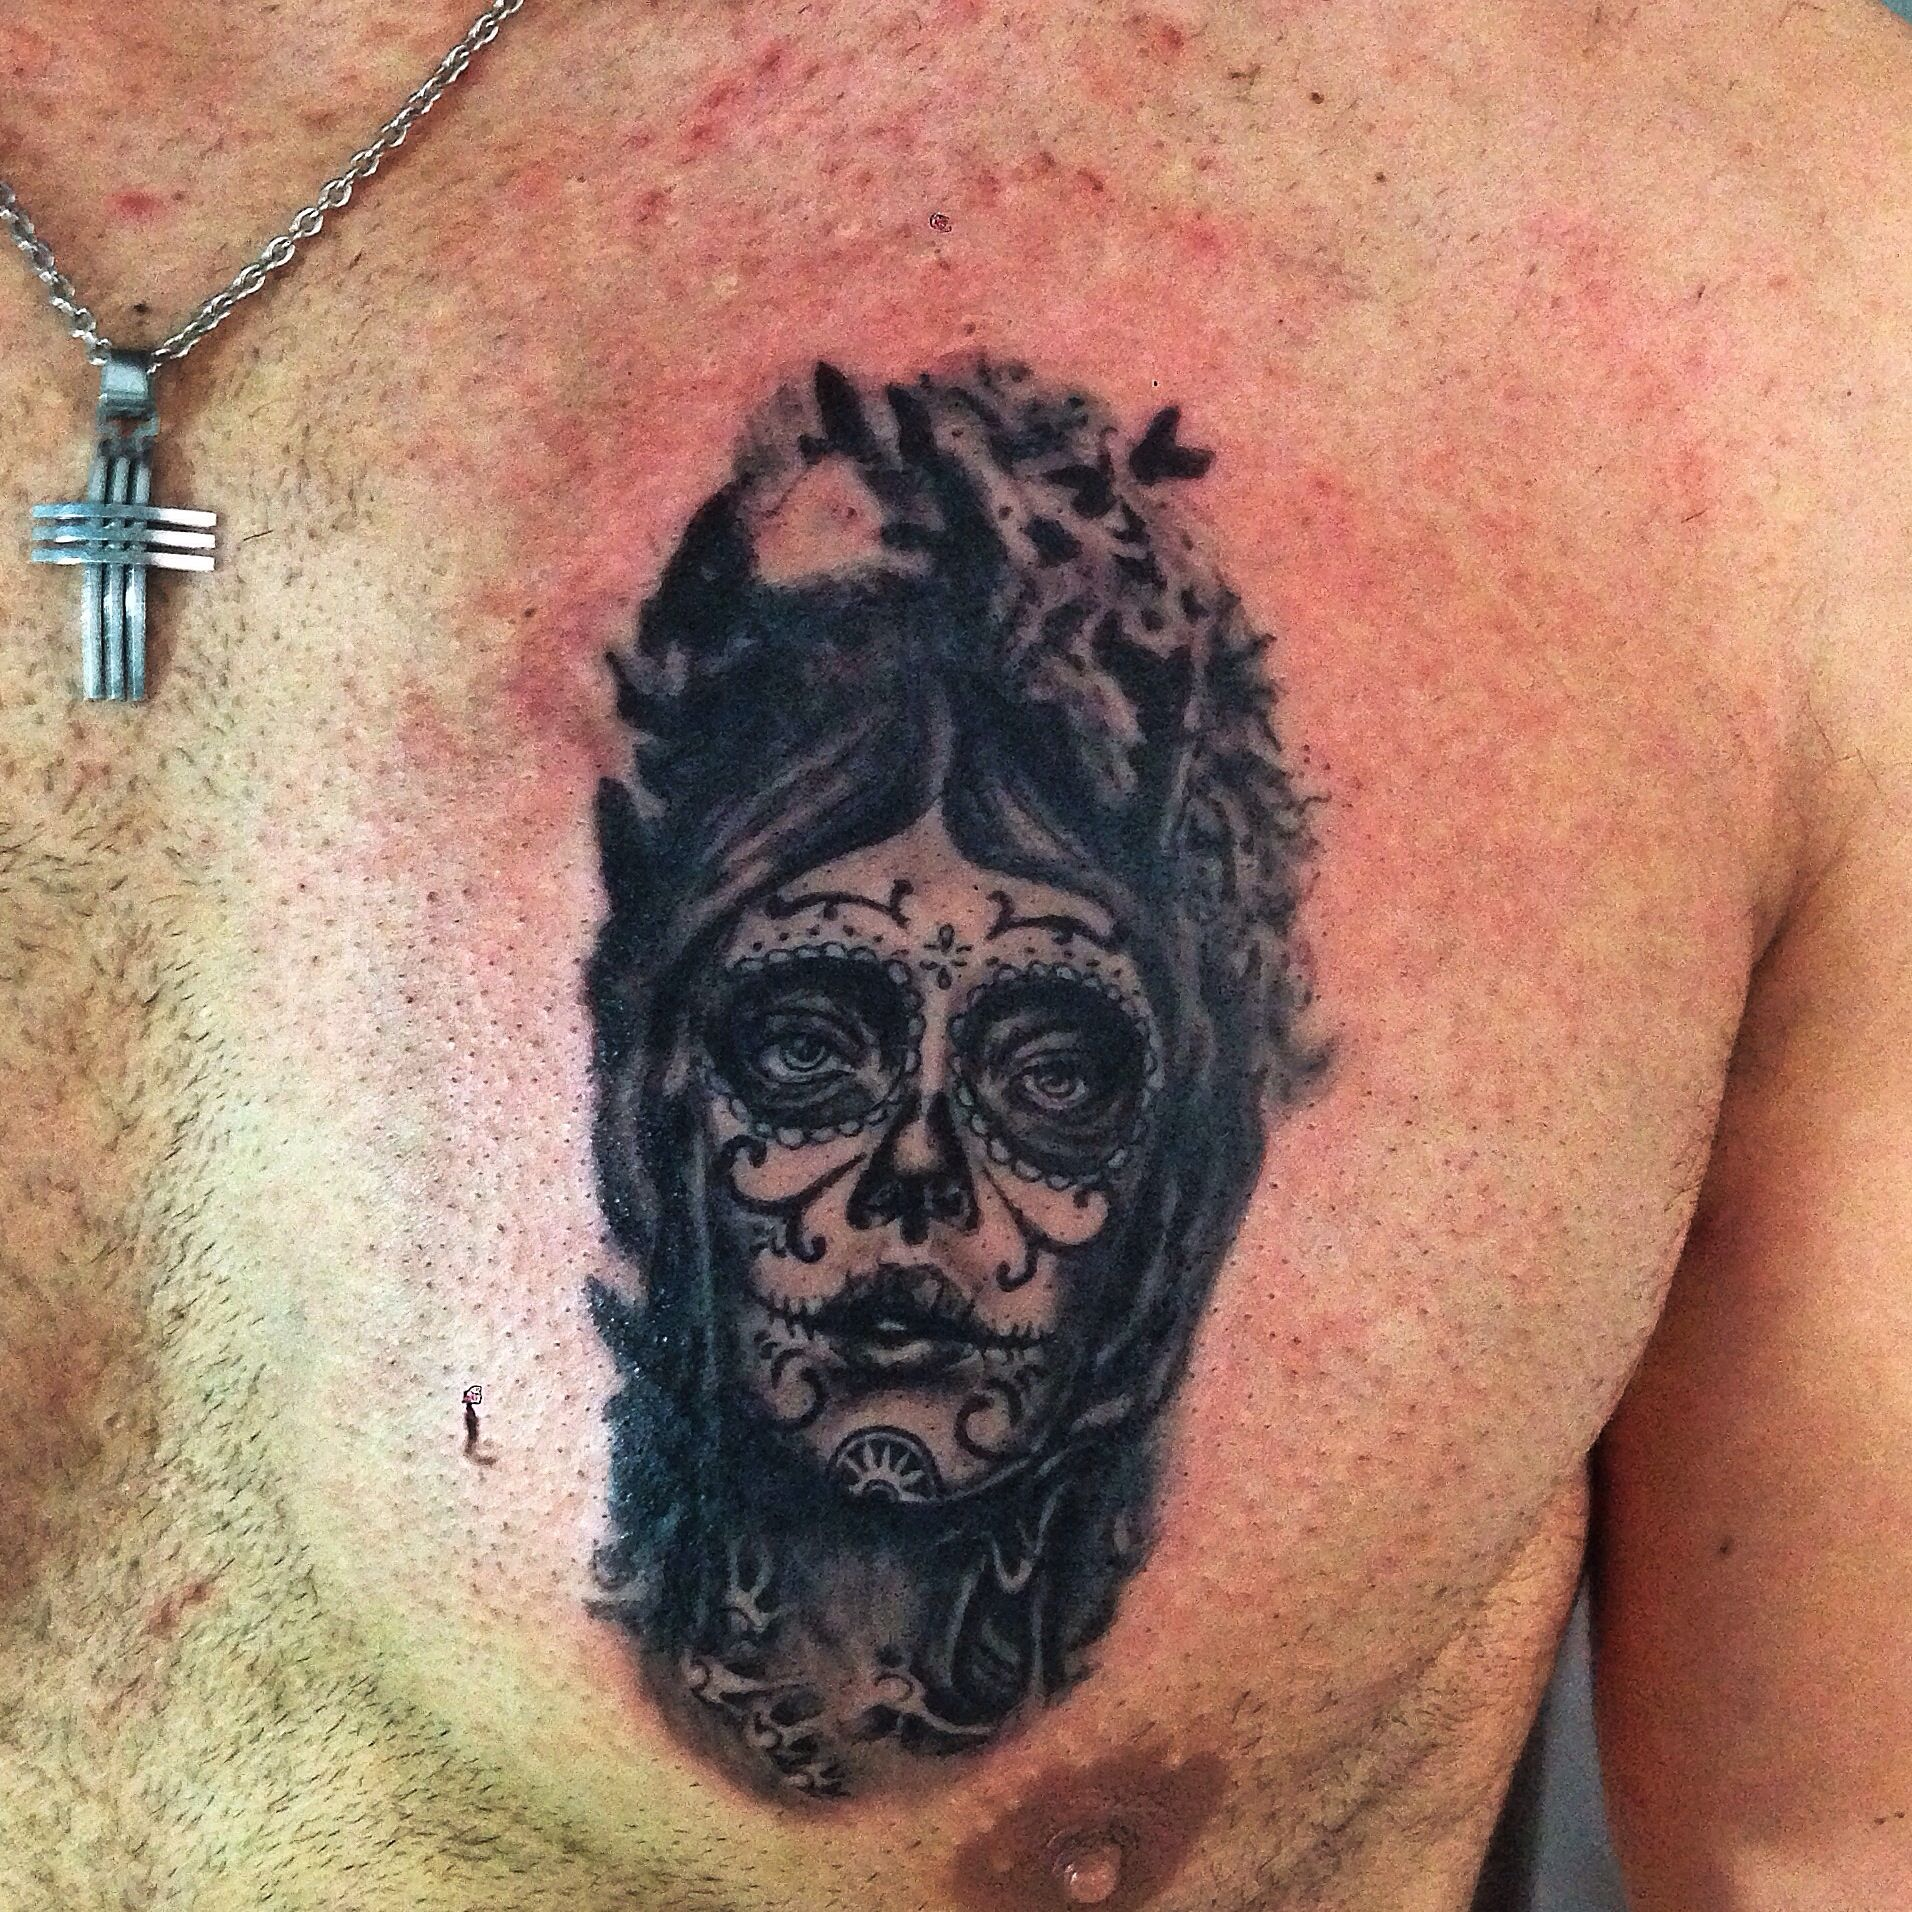 Chest Piece Tattoo Prices: Day Of The Dead Chest Piece Stared